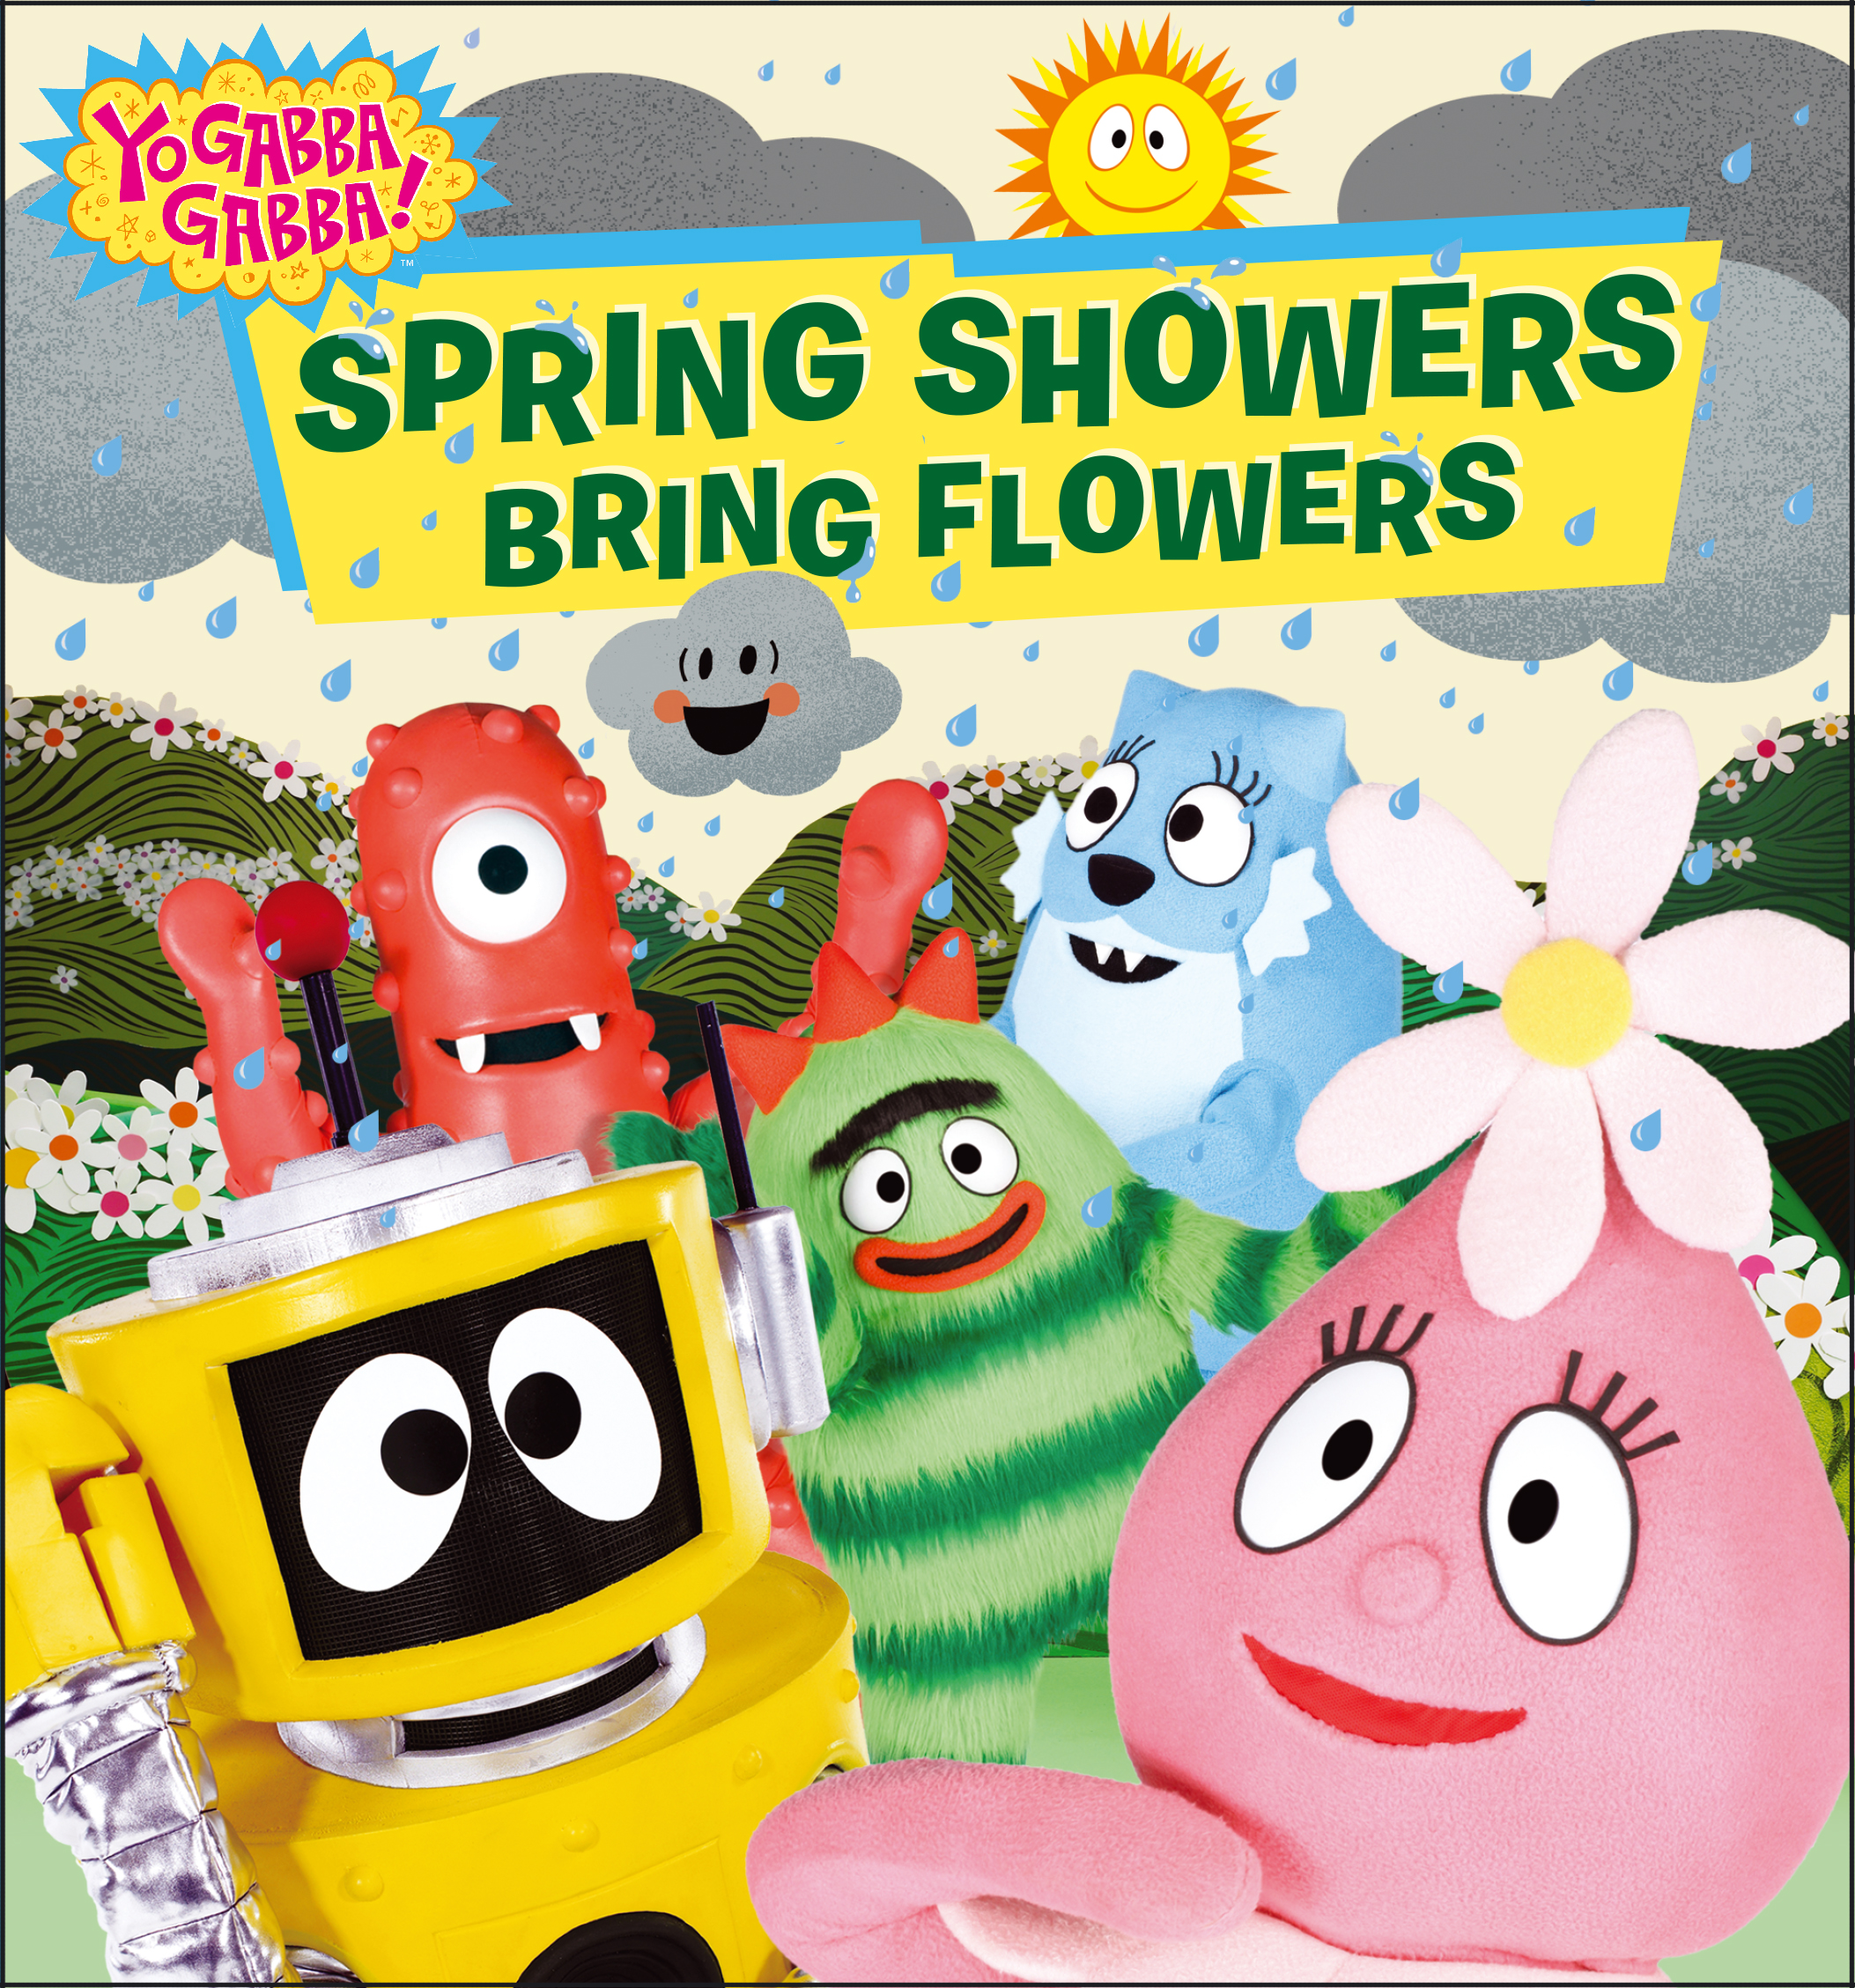 Spring-showers-bring-flowers-9781442495722_hr